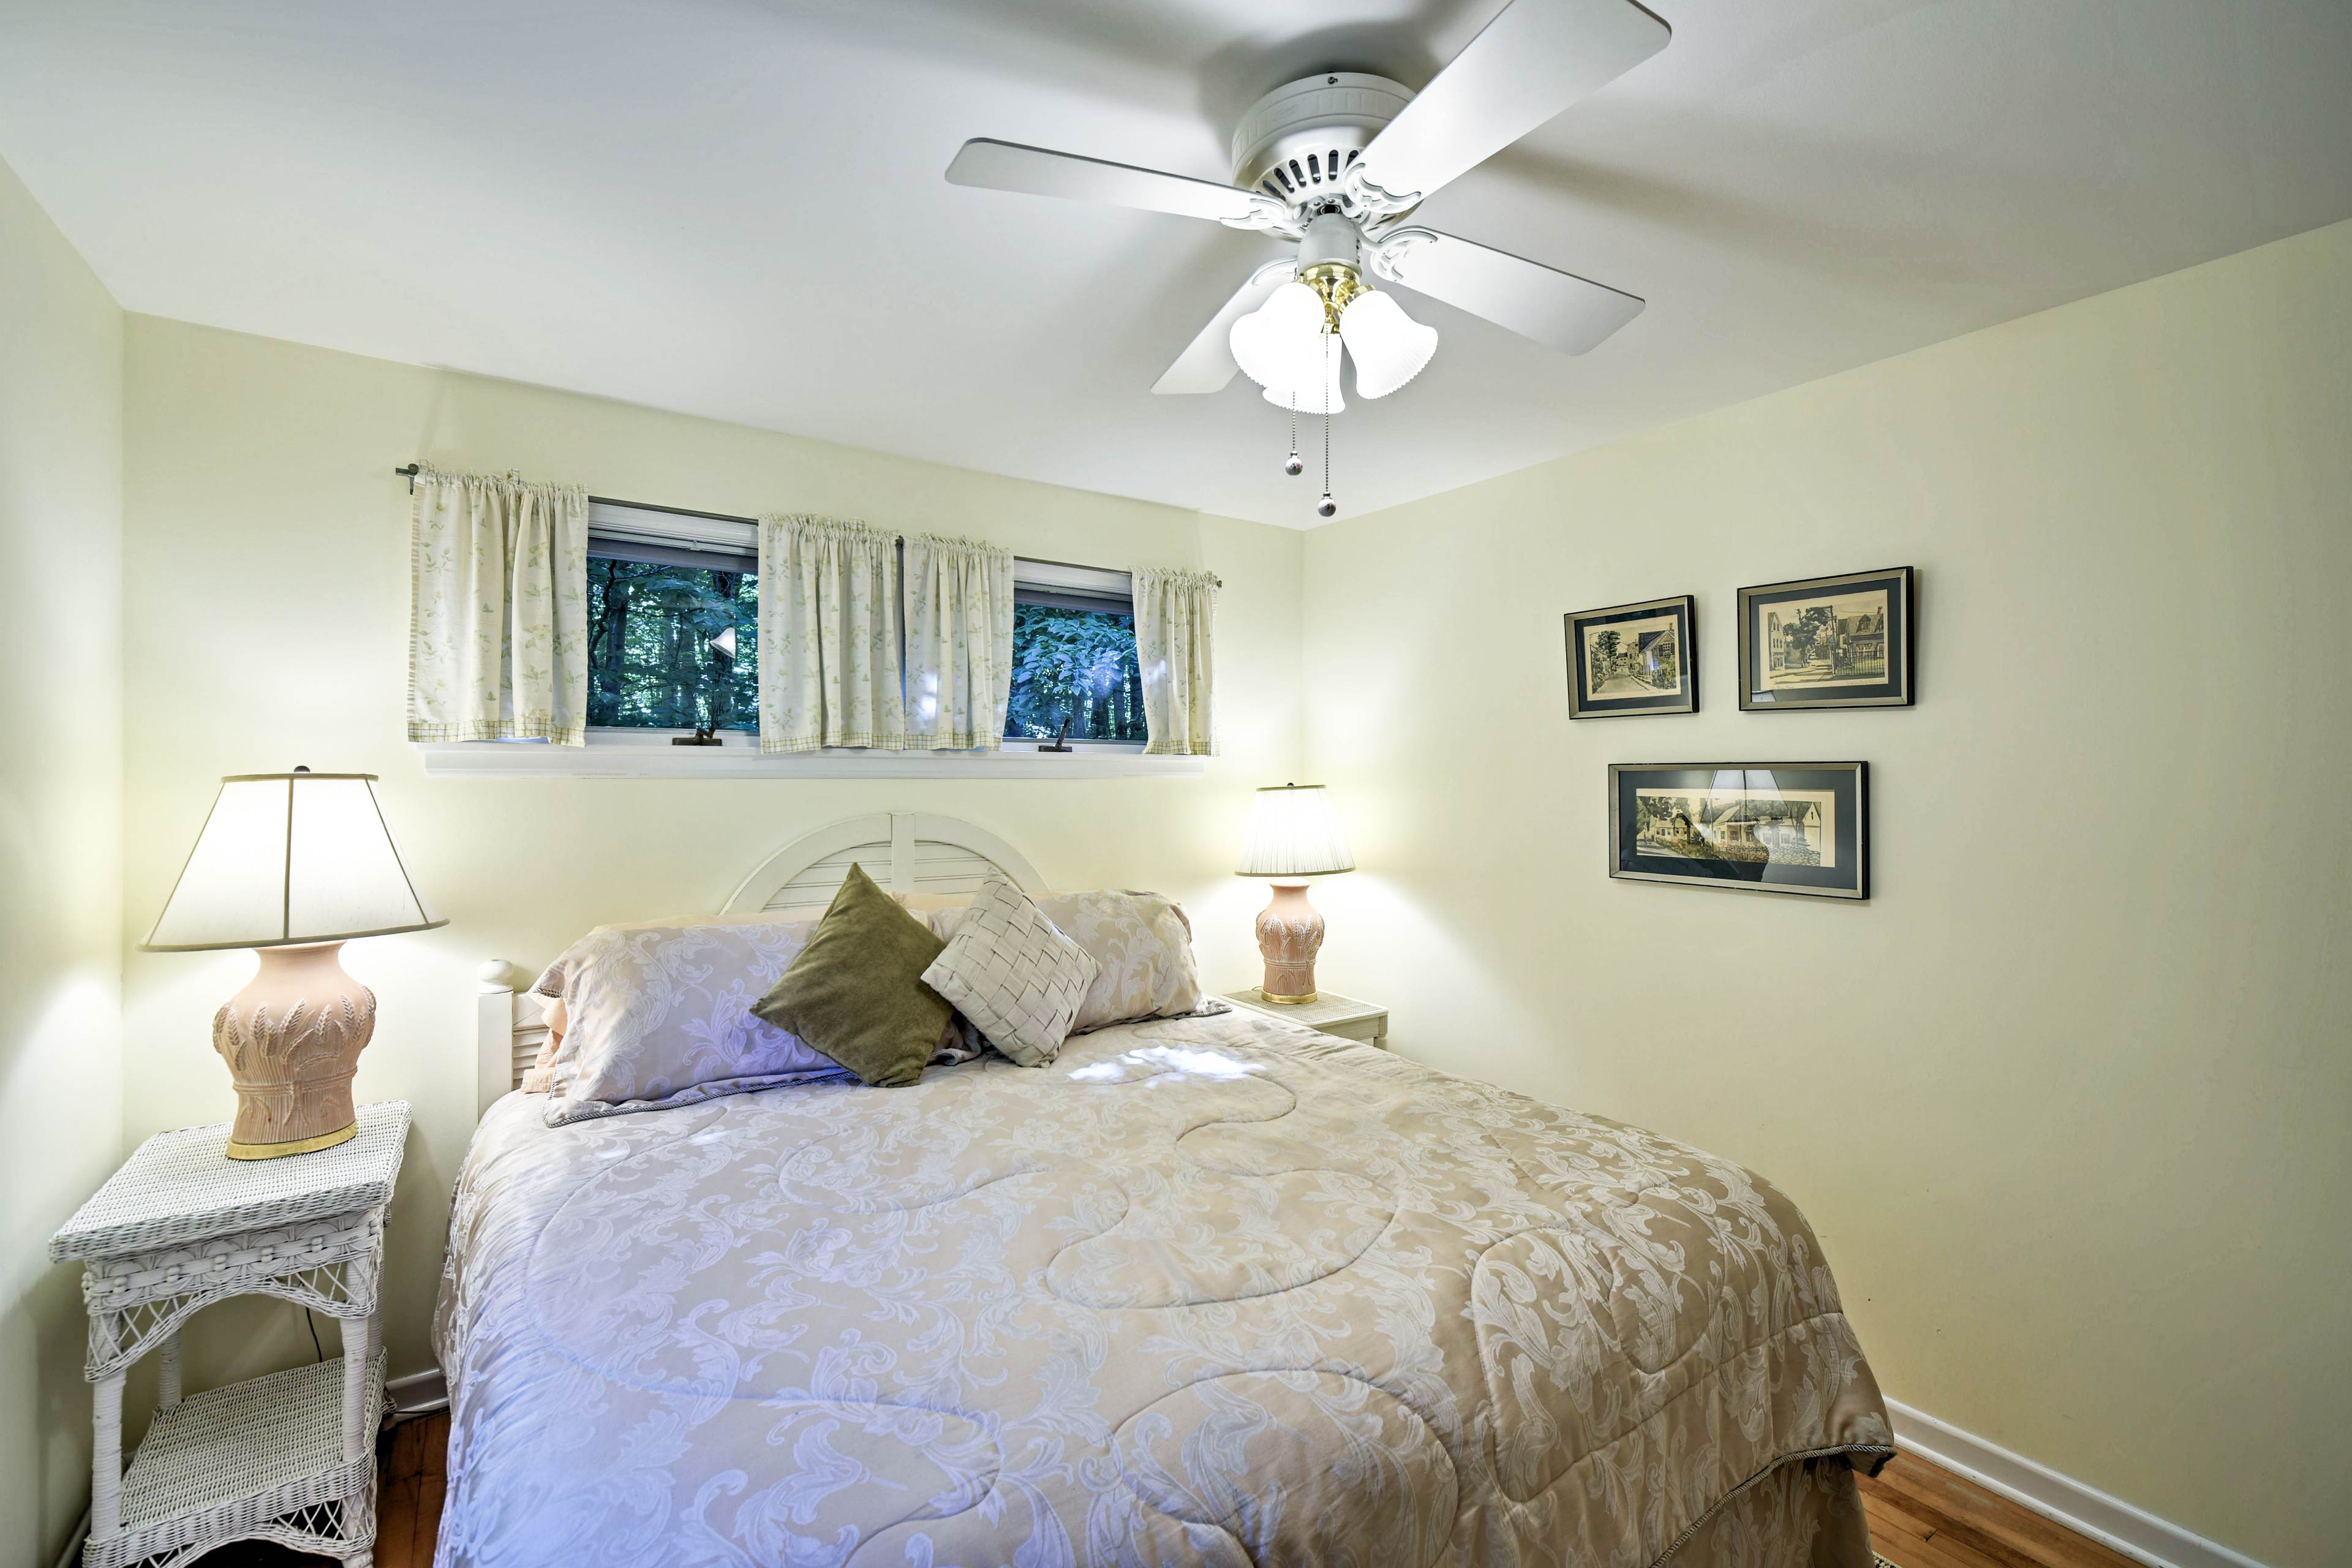 Parents can claim this first bedroom with a king bed.